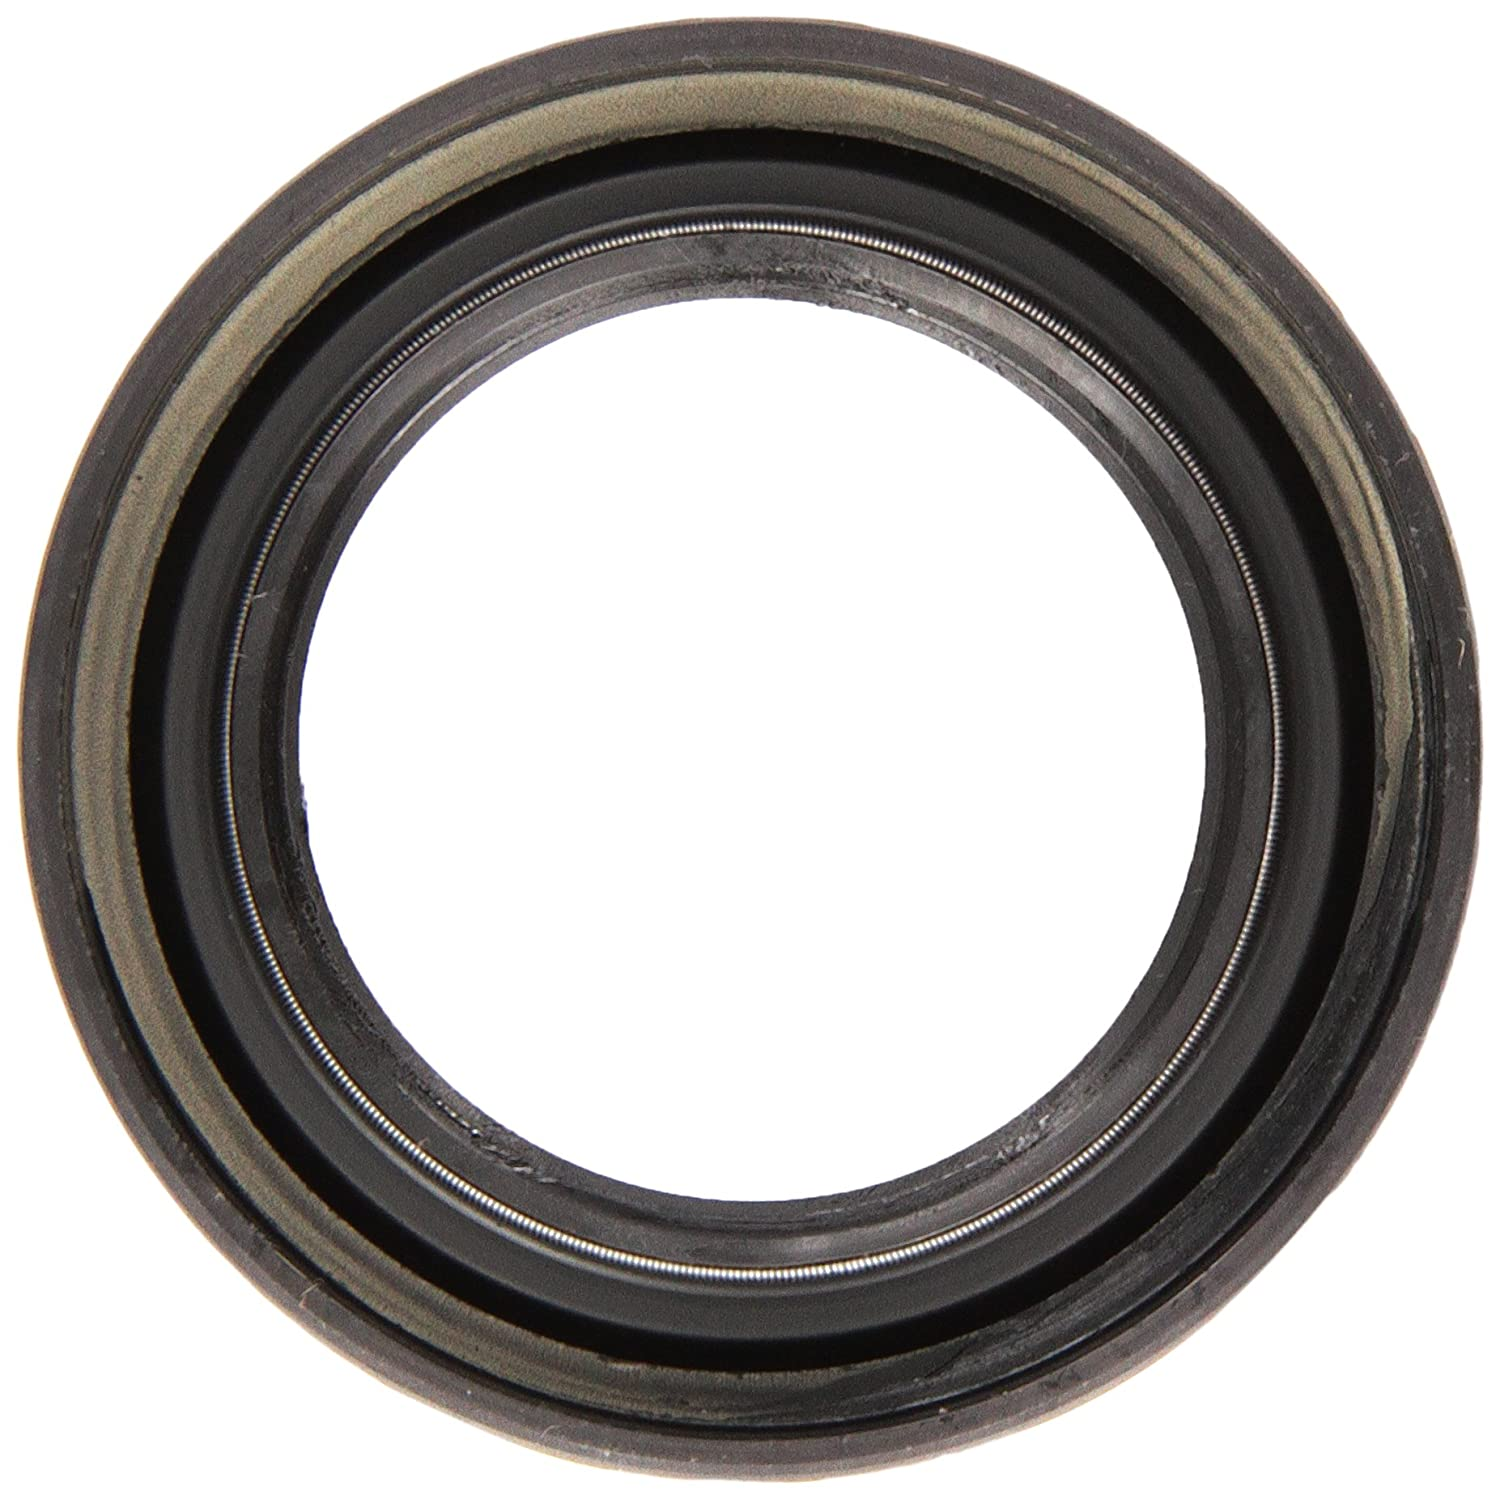 Genuine Nissan 33140-7S110 Extension Oil Seal